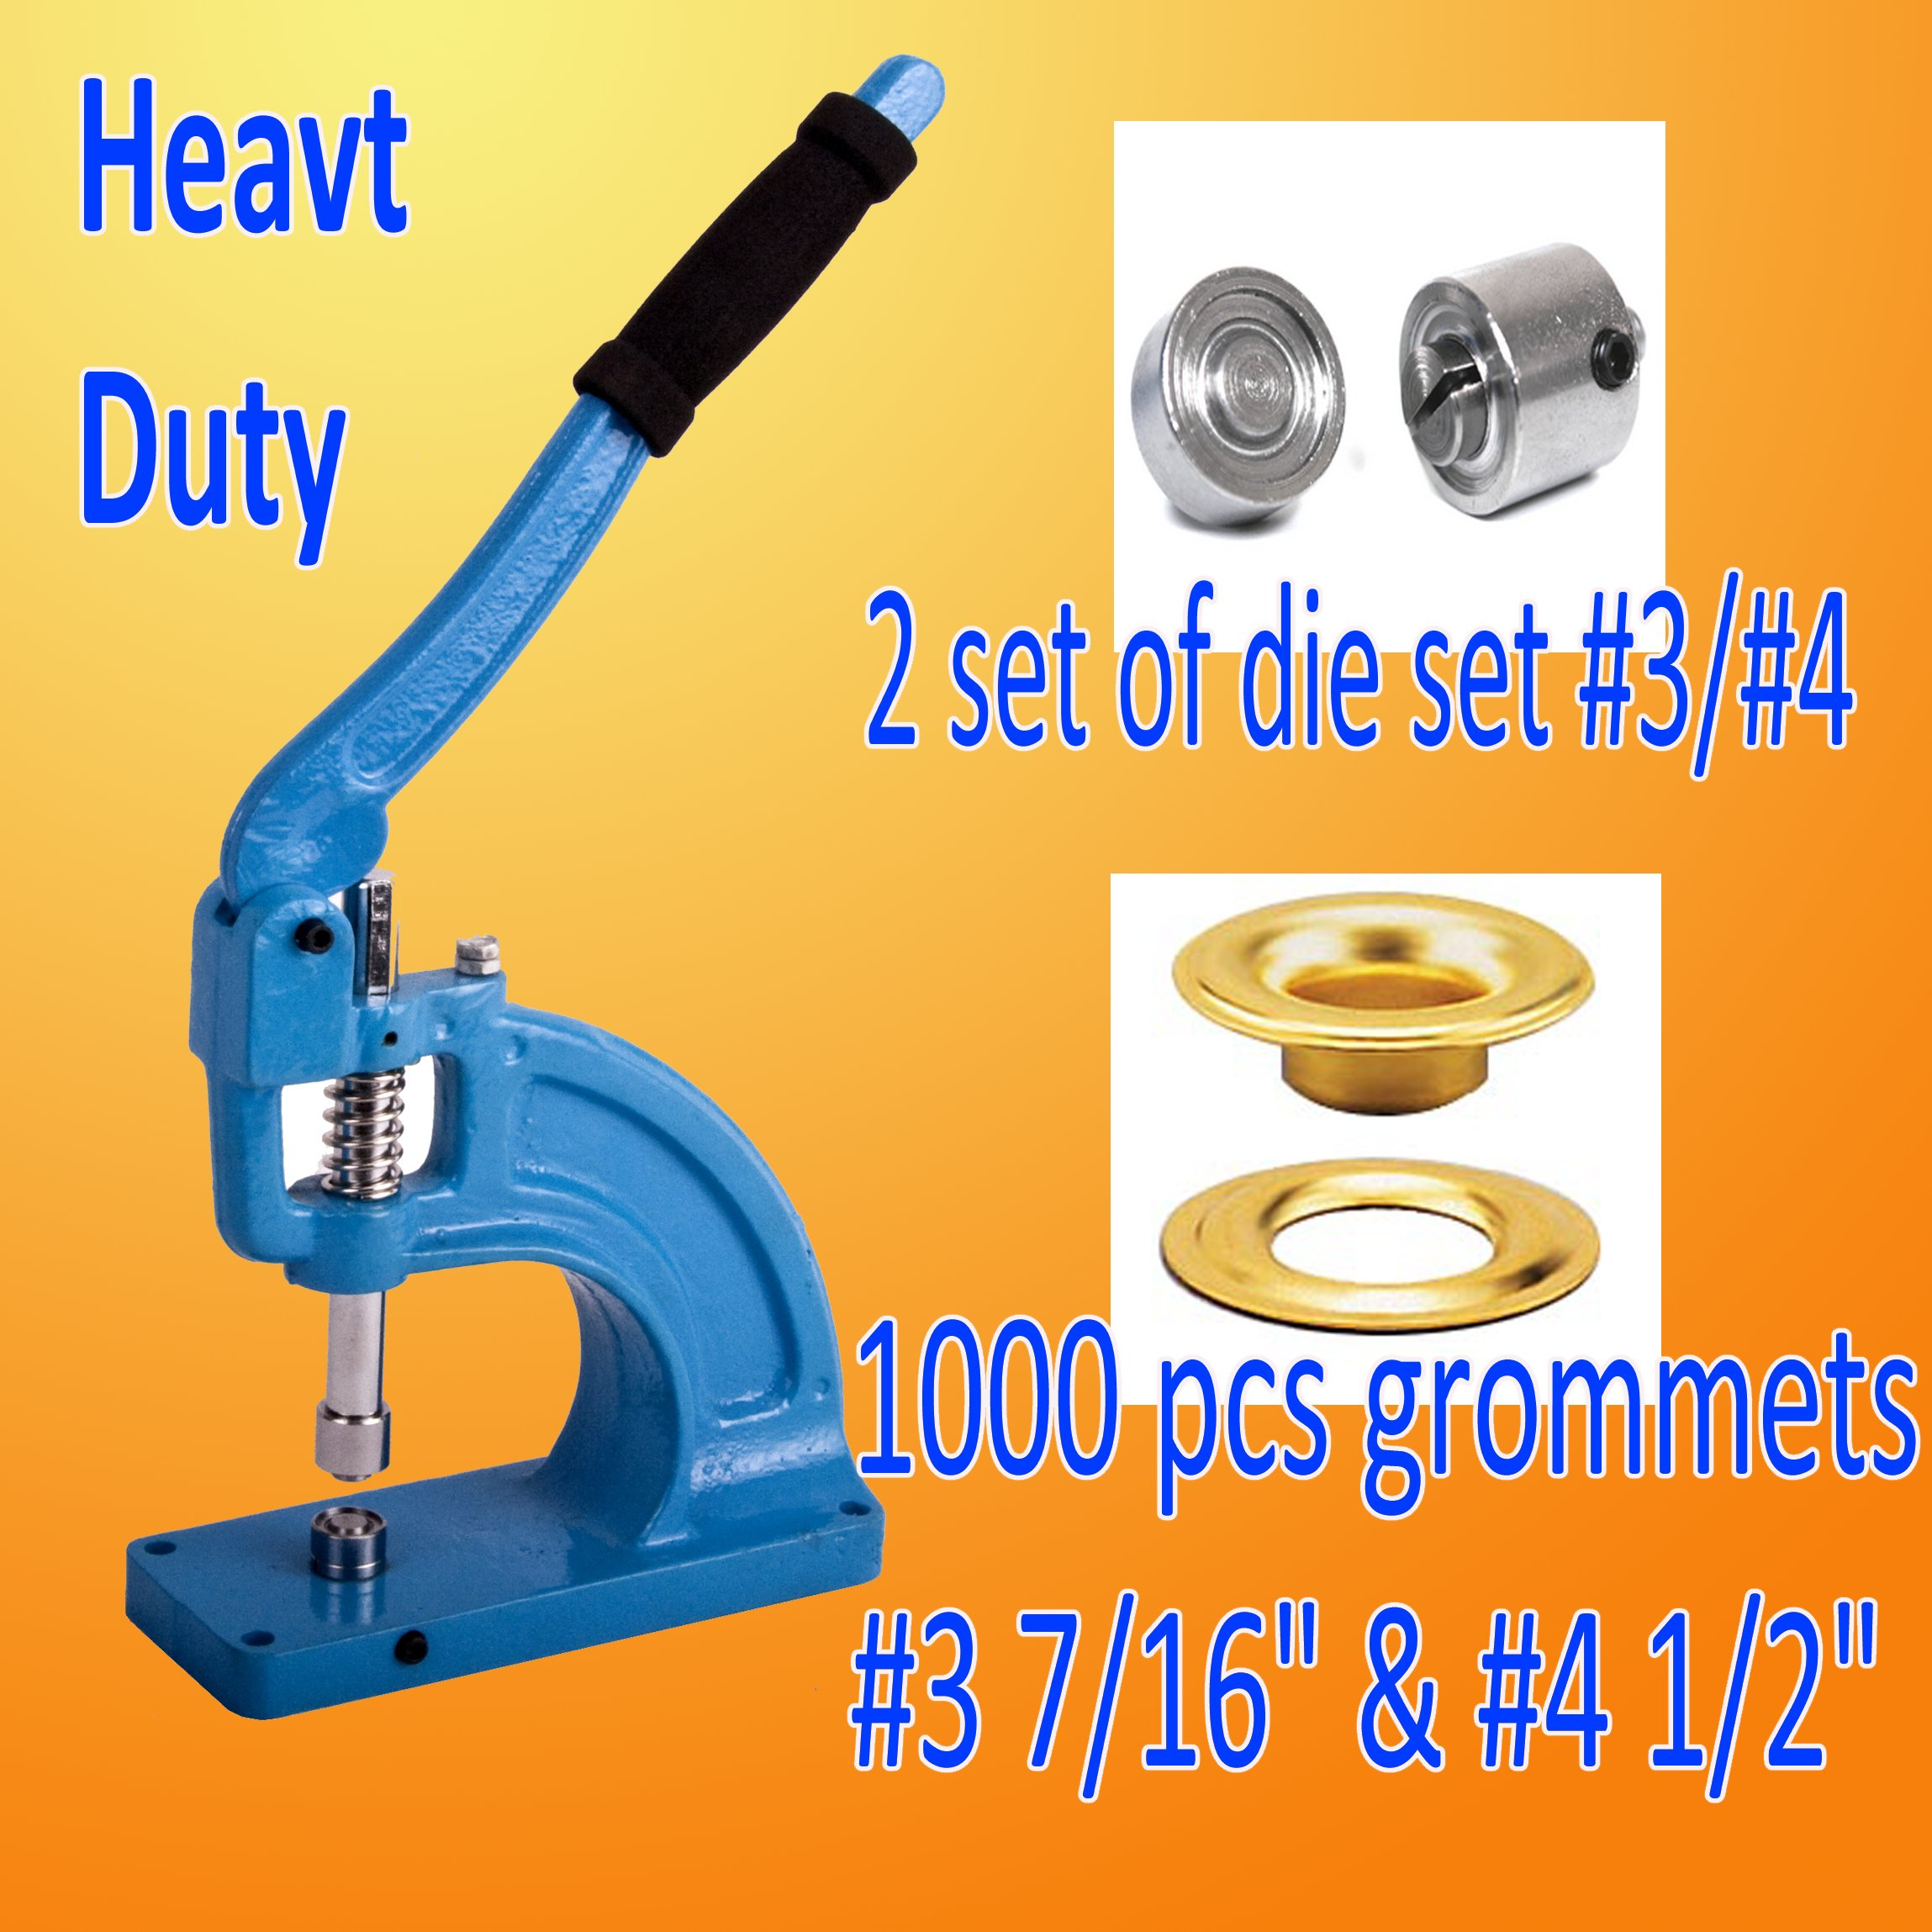 DSM TM Professional Grade Grommet Machine w/ 2 Die Sets (#3 & #4) and 1000 Grommets Hand Eyelet Press Hole Punch Tool